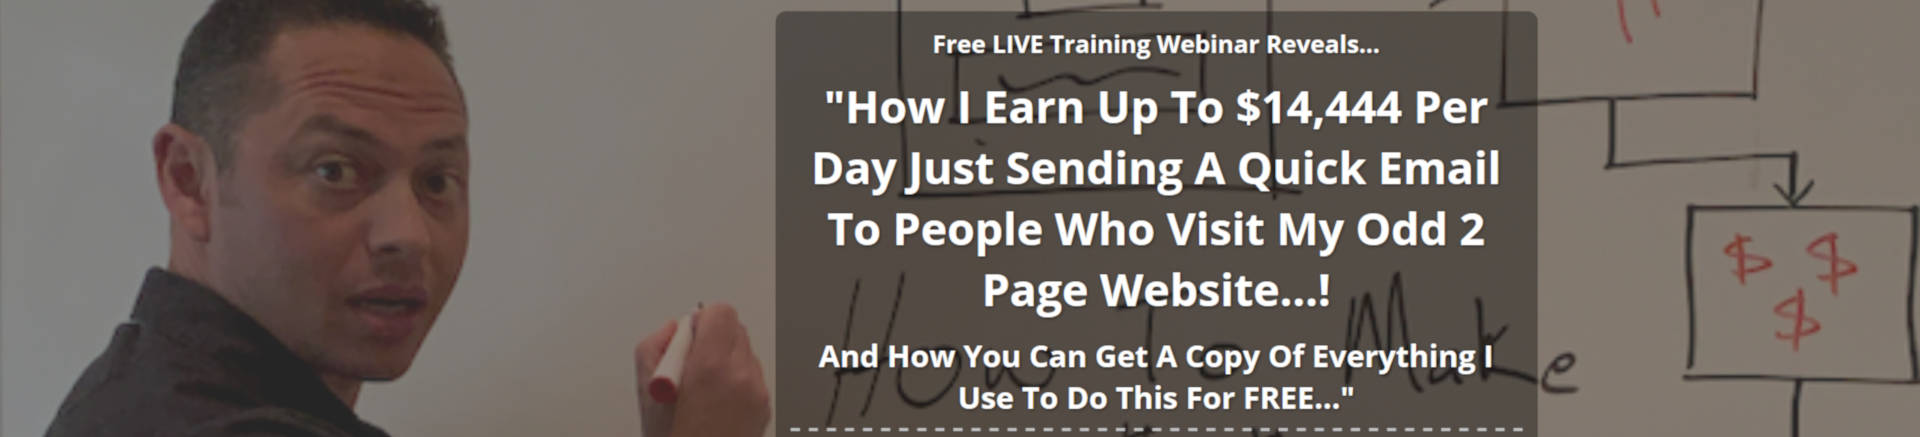 Giveaway No Verification  1k A Day Fast Track Training Program